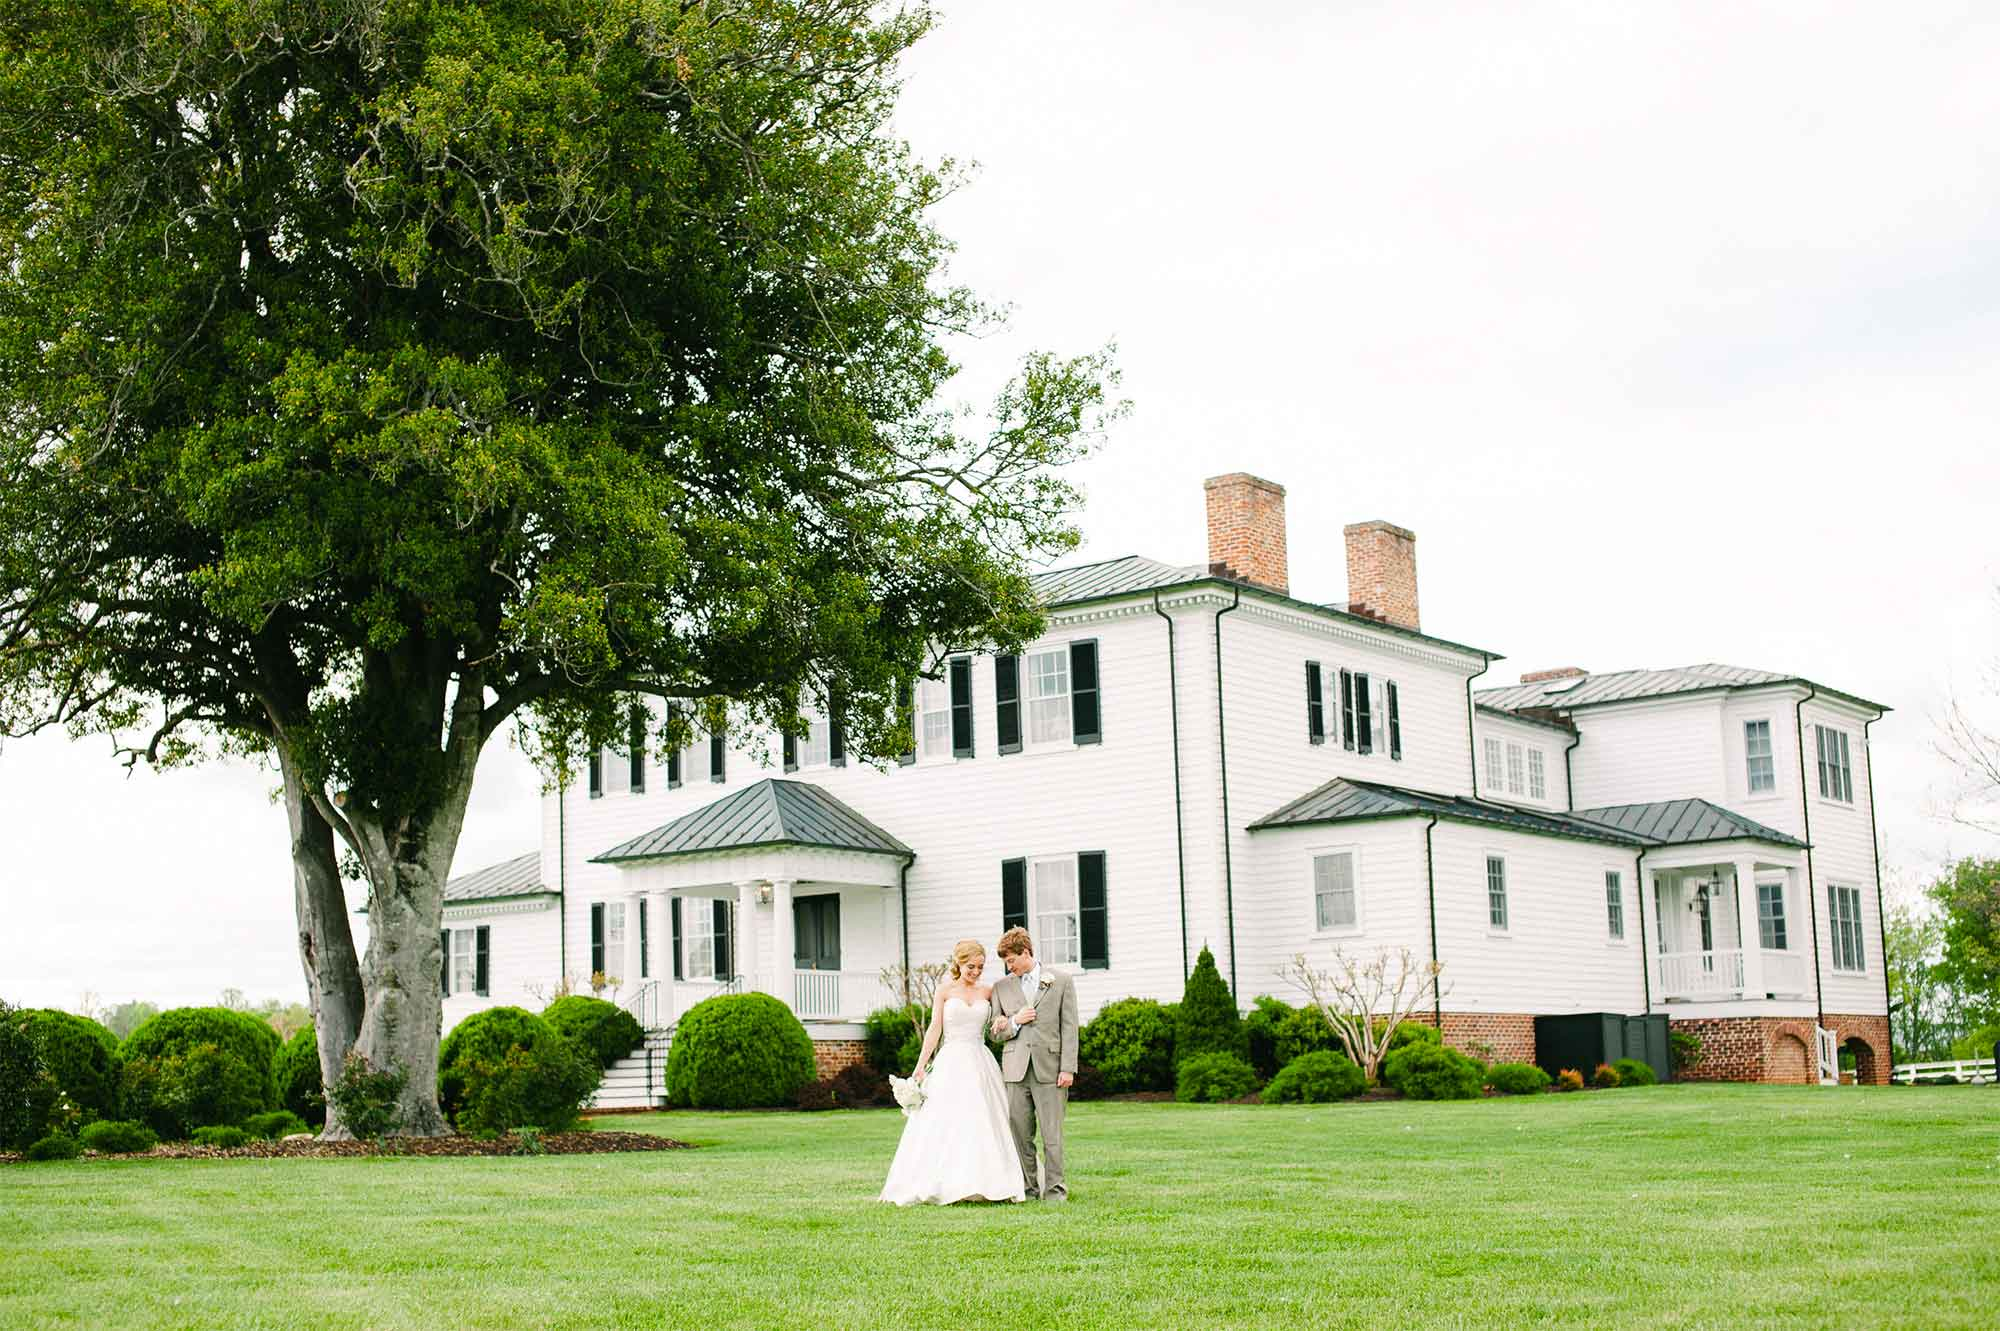 Mount Ida Manor Wedding - Historic Home Wedding Venue - Bride and Groom stand on green lawn in front of stately white Mount Ida Manor in Charlottesville, Virginia